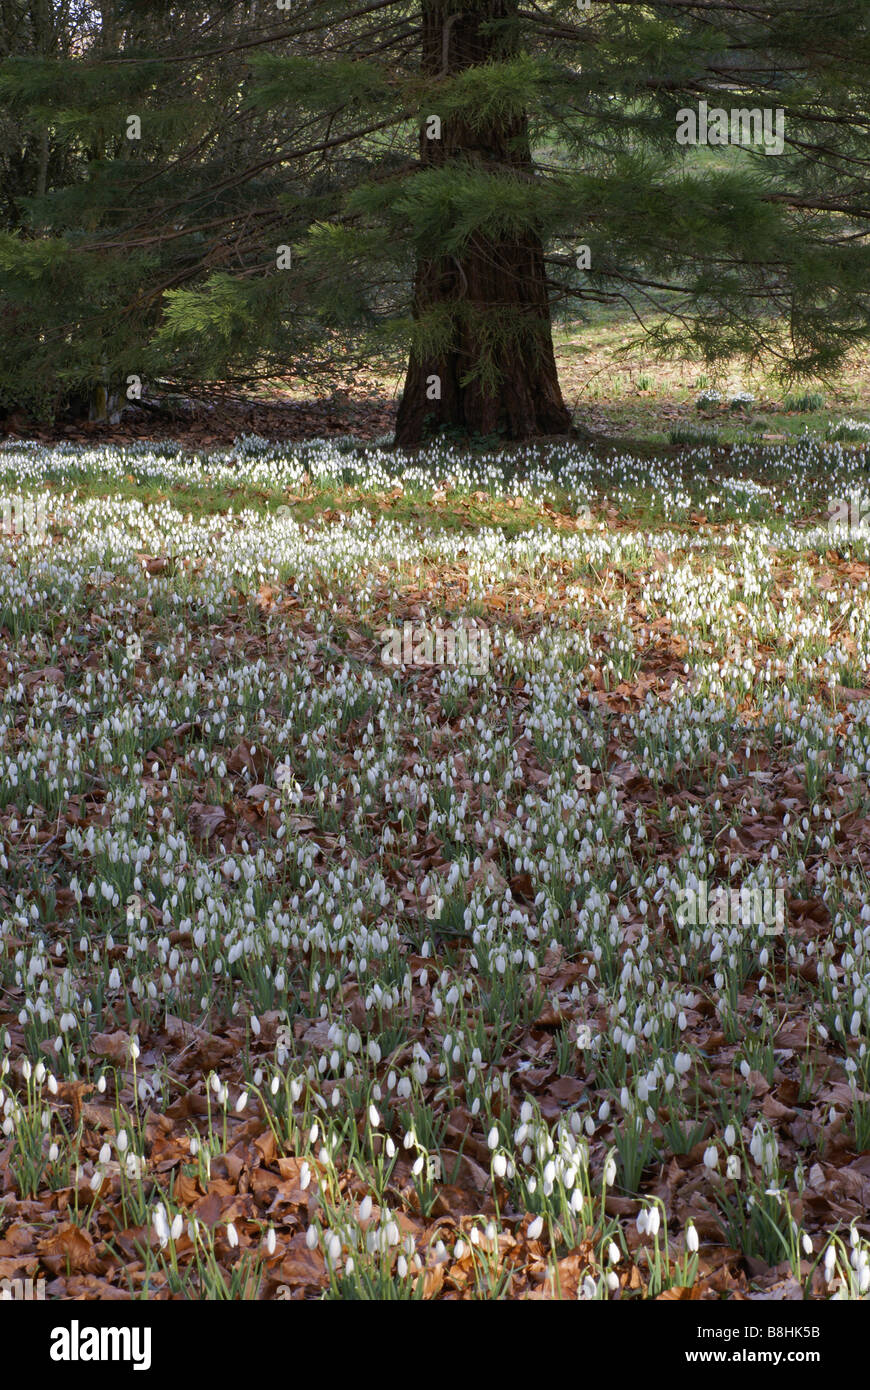 snowdrops in parkland among fallen autumn leaves with conifer tree in background - Stock Image